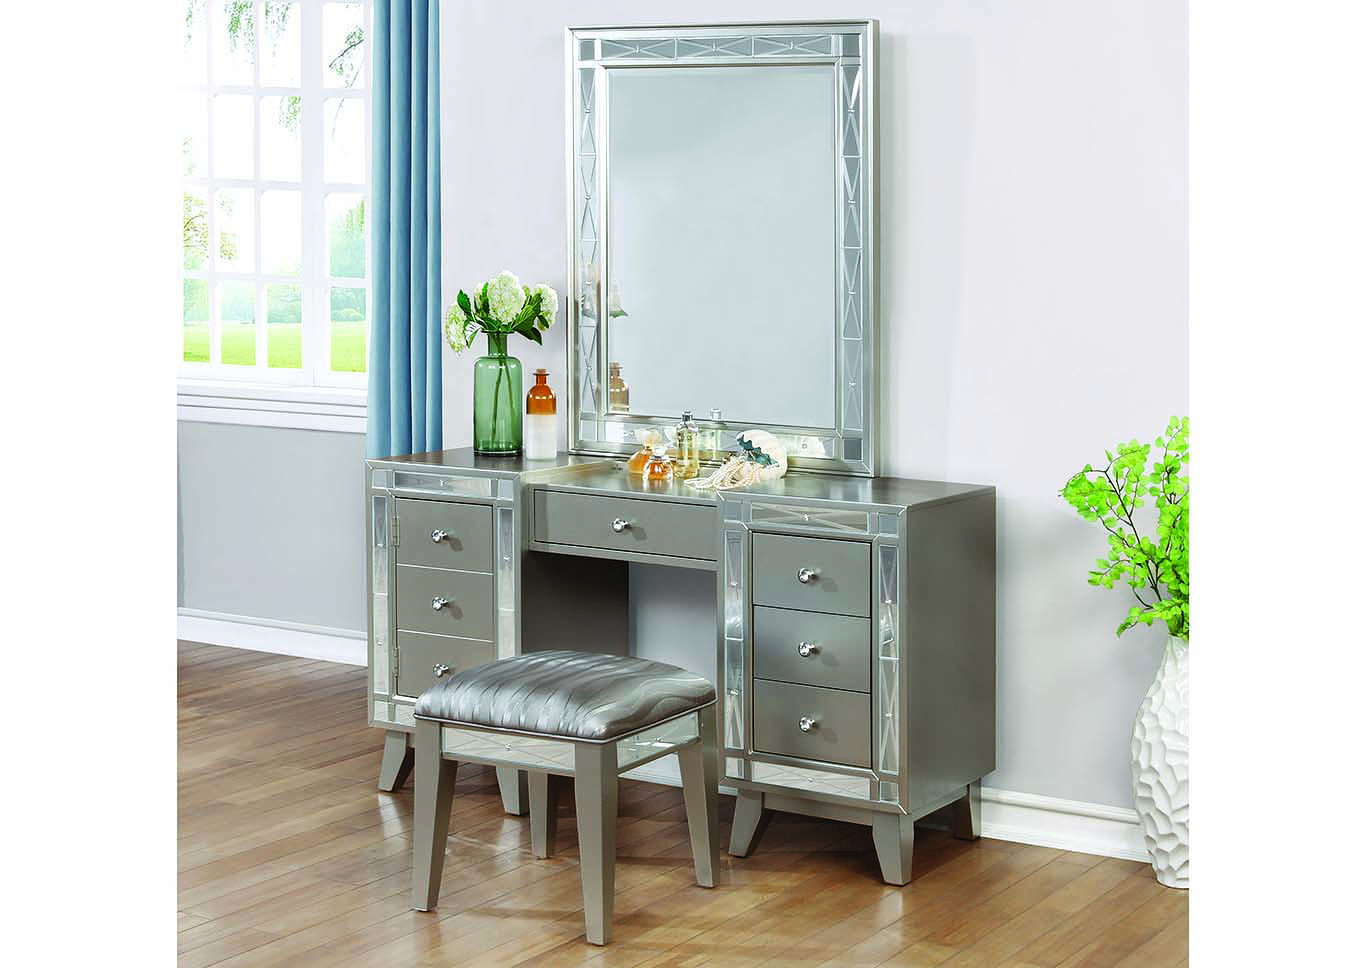 Leighton Metallic Mercury Vanity Desk, Stool [Set of 2] & Mirror,Coaster Furniture